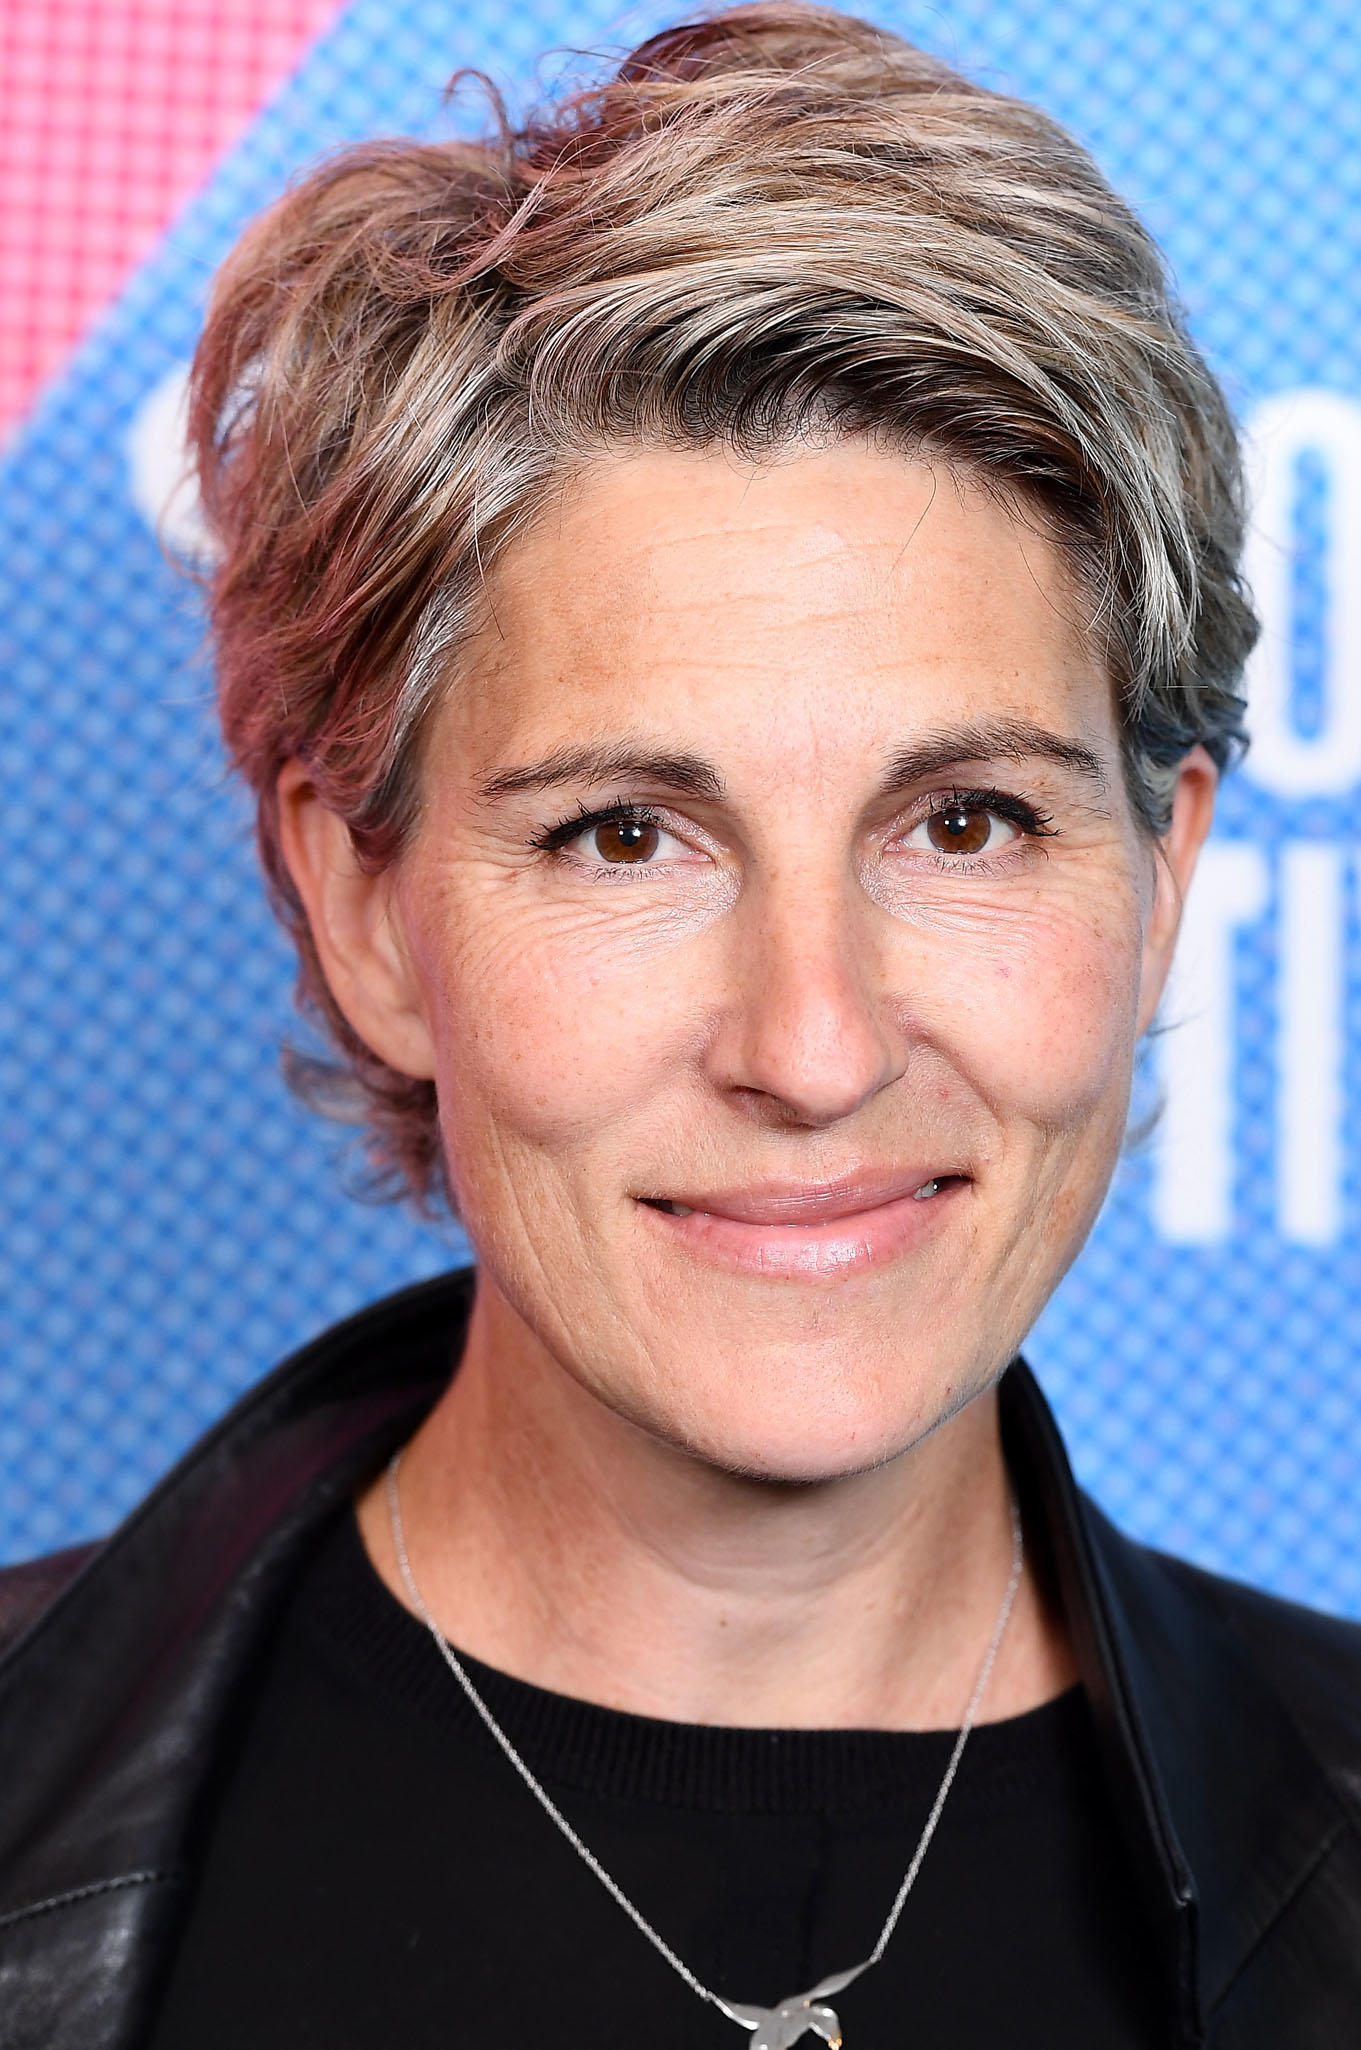 Tamsin Greig at the UK premiere of